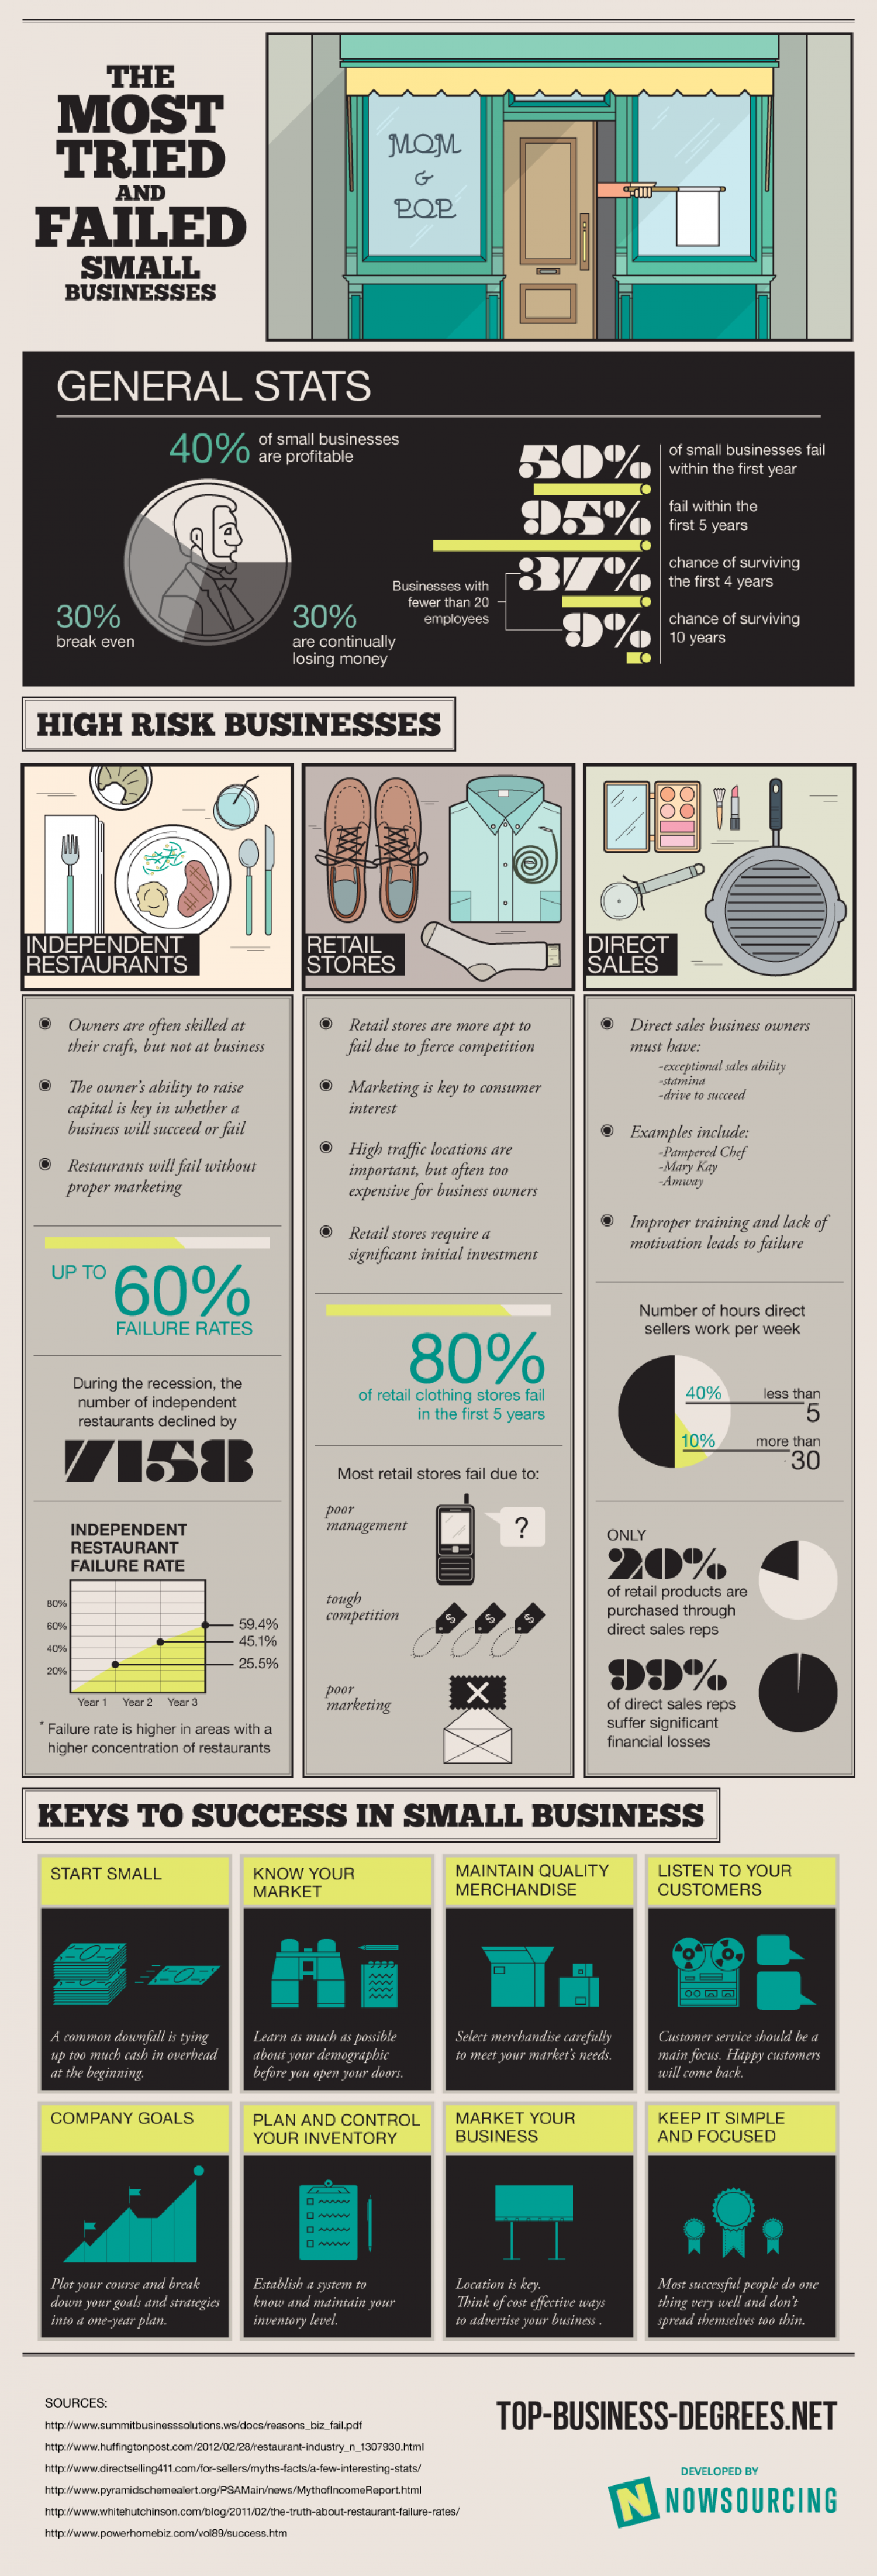 The Most Tried and Failed Small Businesses Infographic